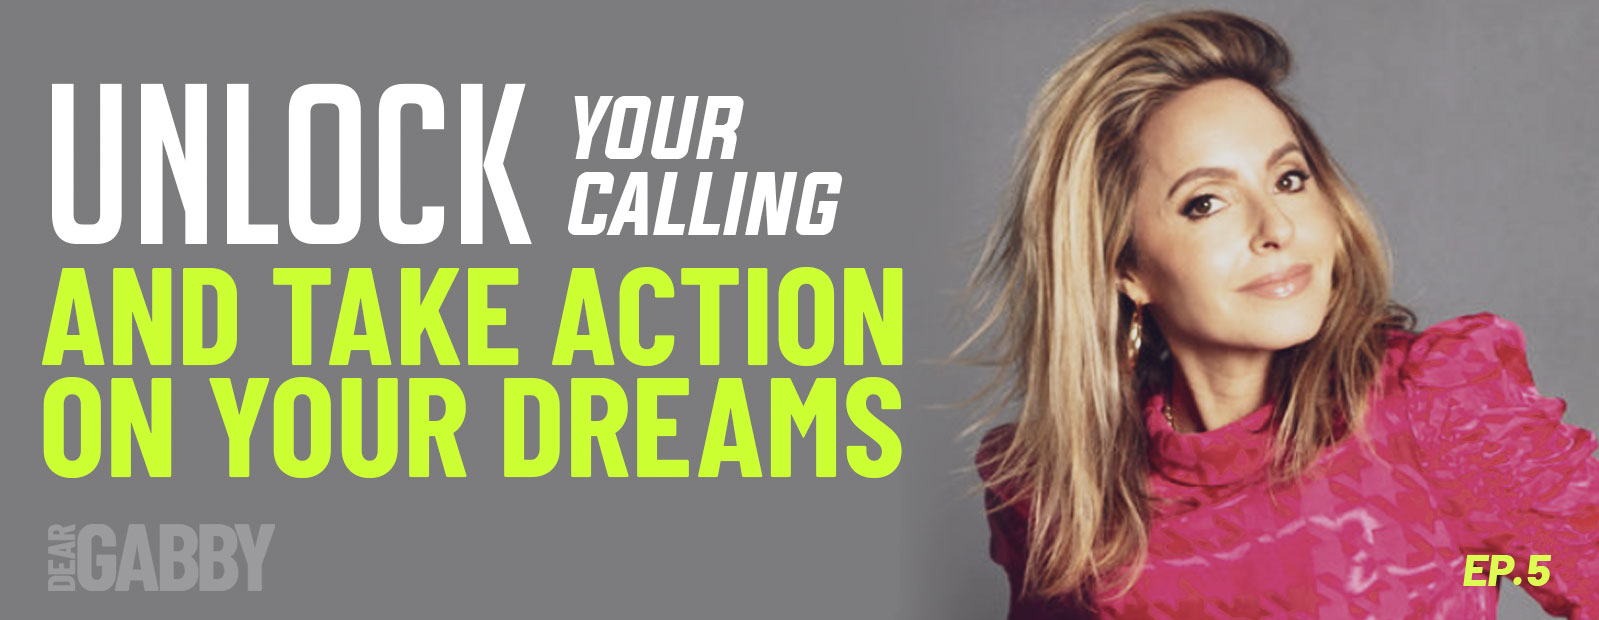 Unlock Your Calling and Take Action on Your Dreams